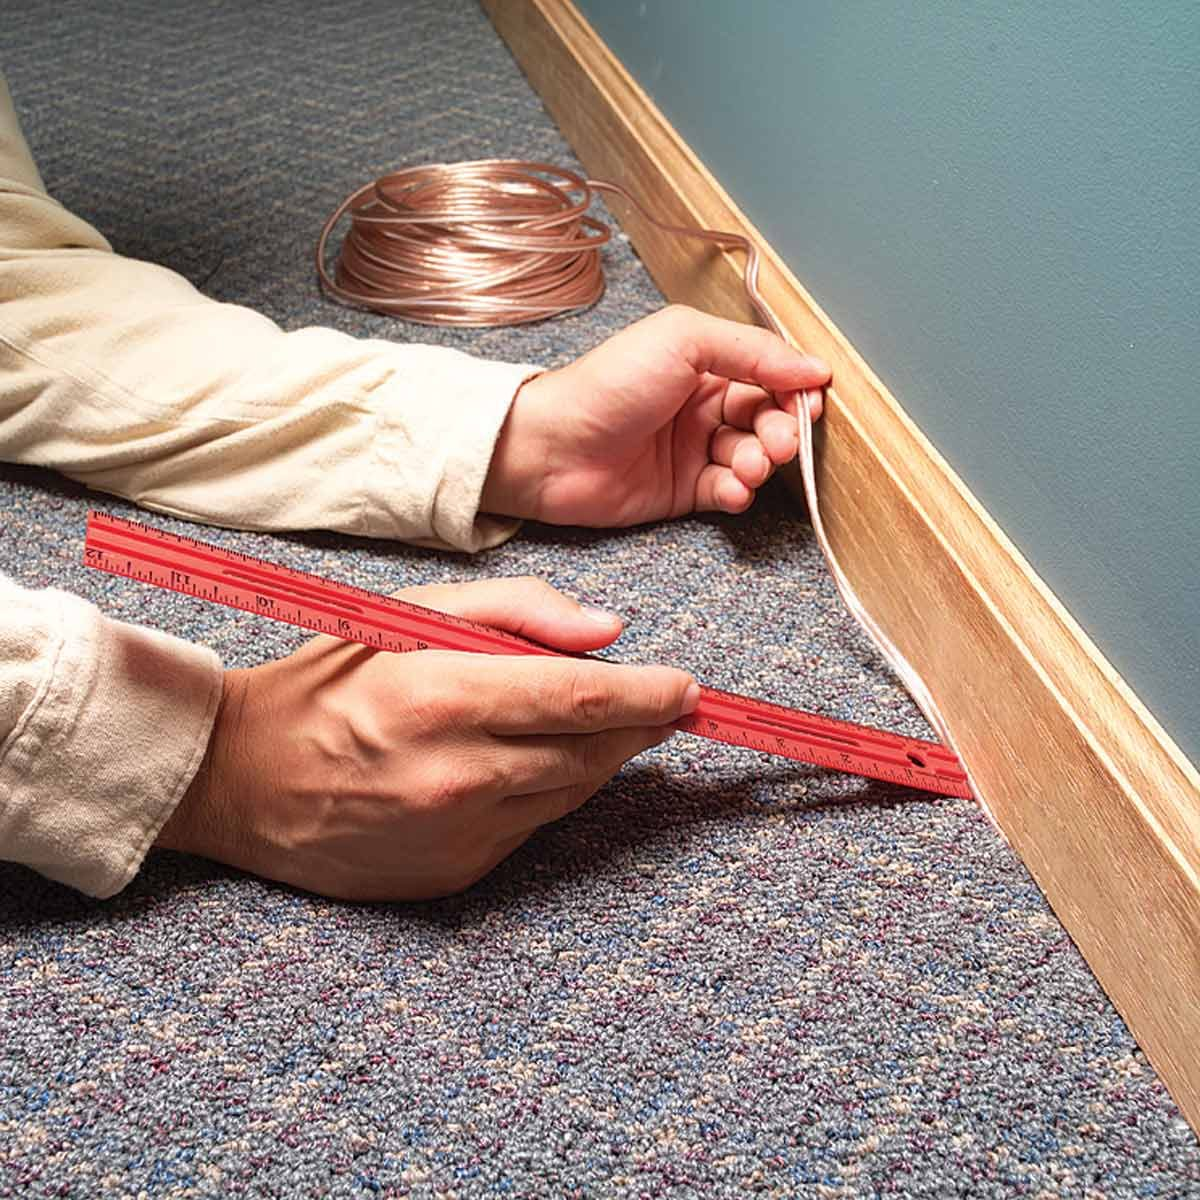 5 Brilliant Ways To Hide Wires In A Room Without Going